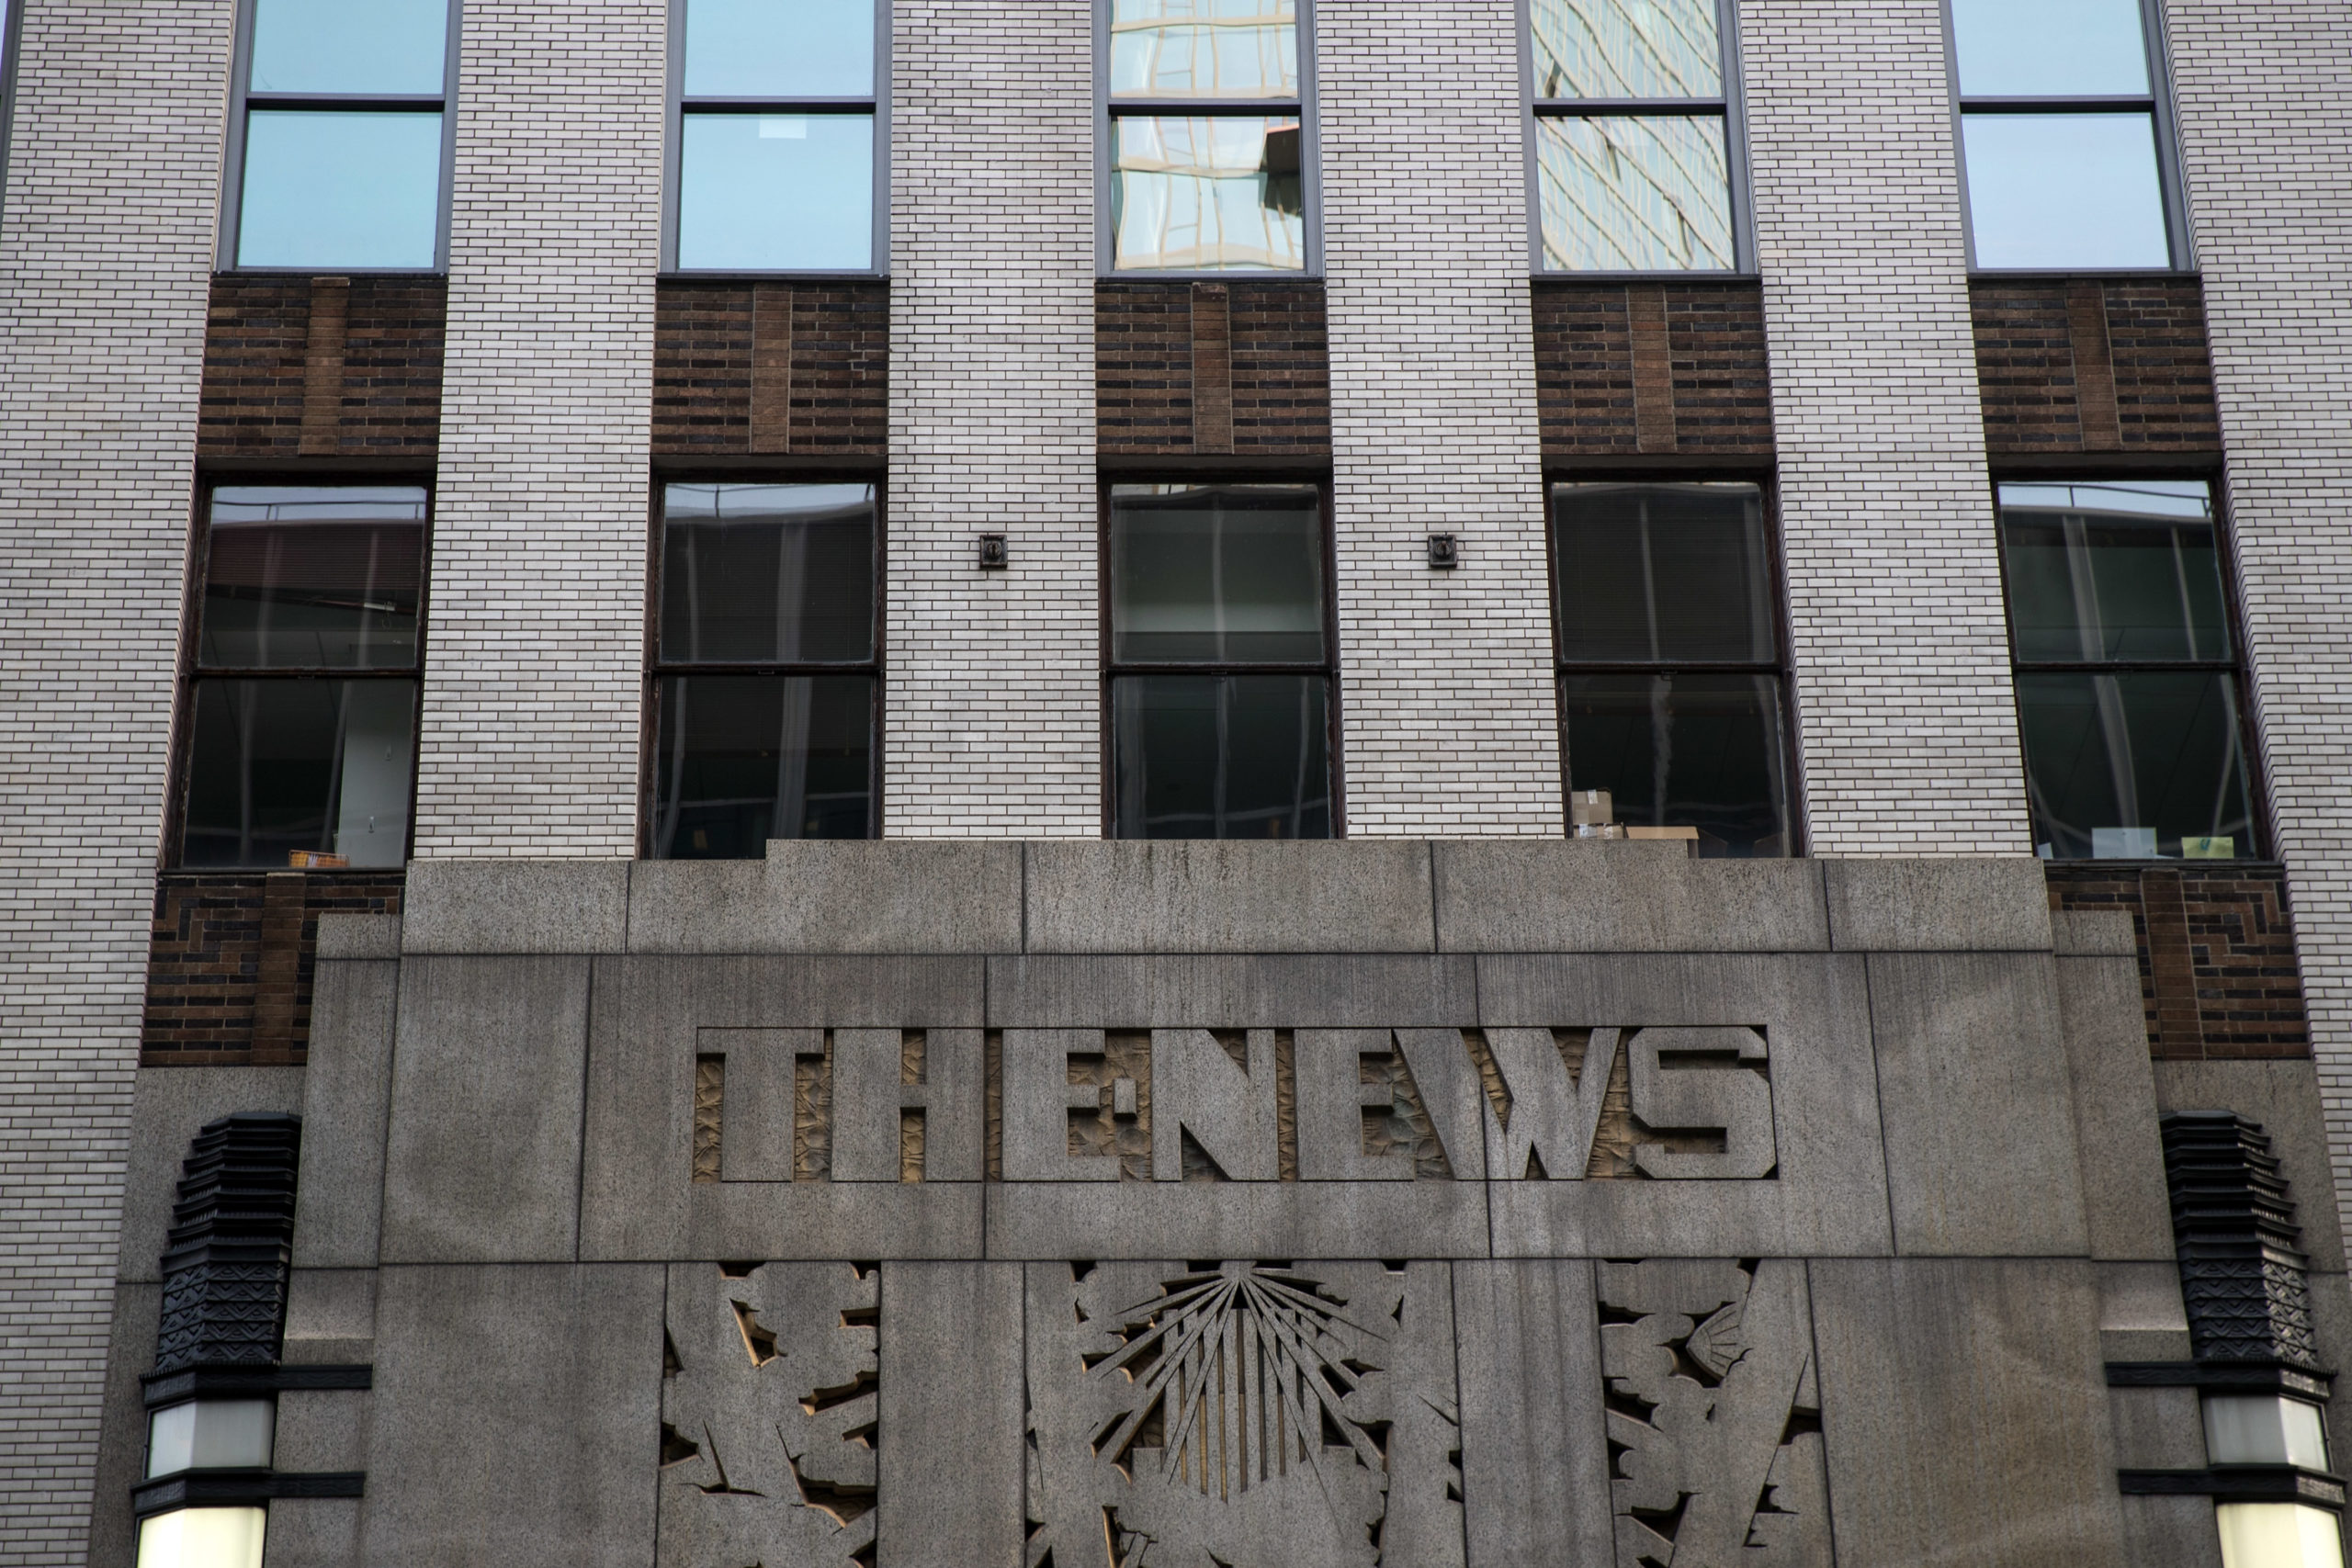 Alden Capital recently bought a stake in New York Daily News parent Tribune